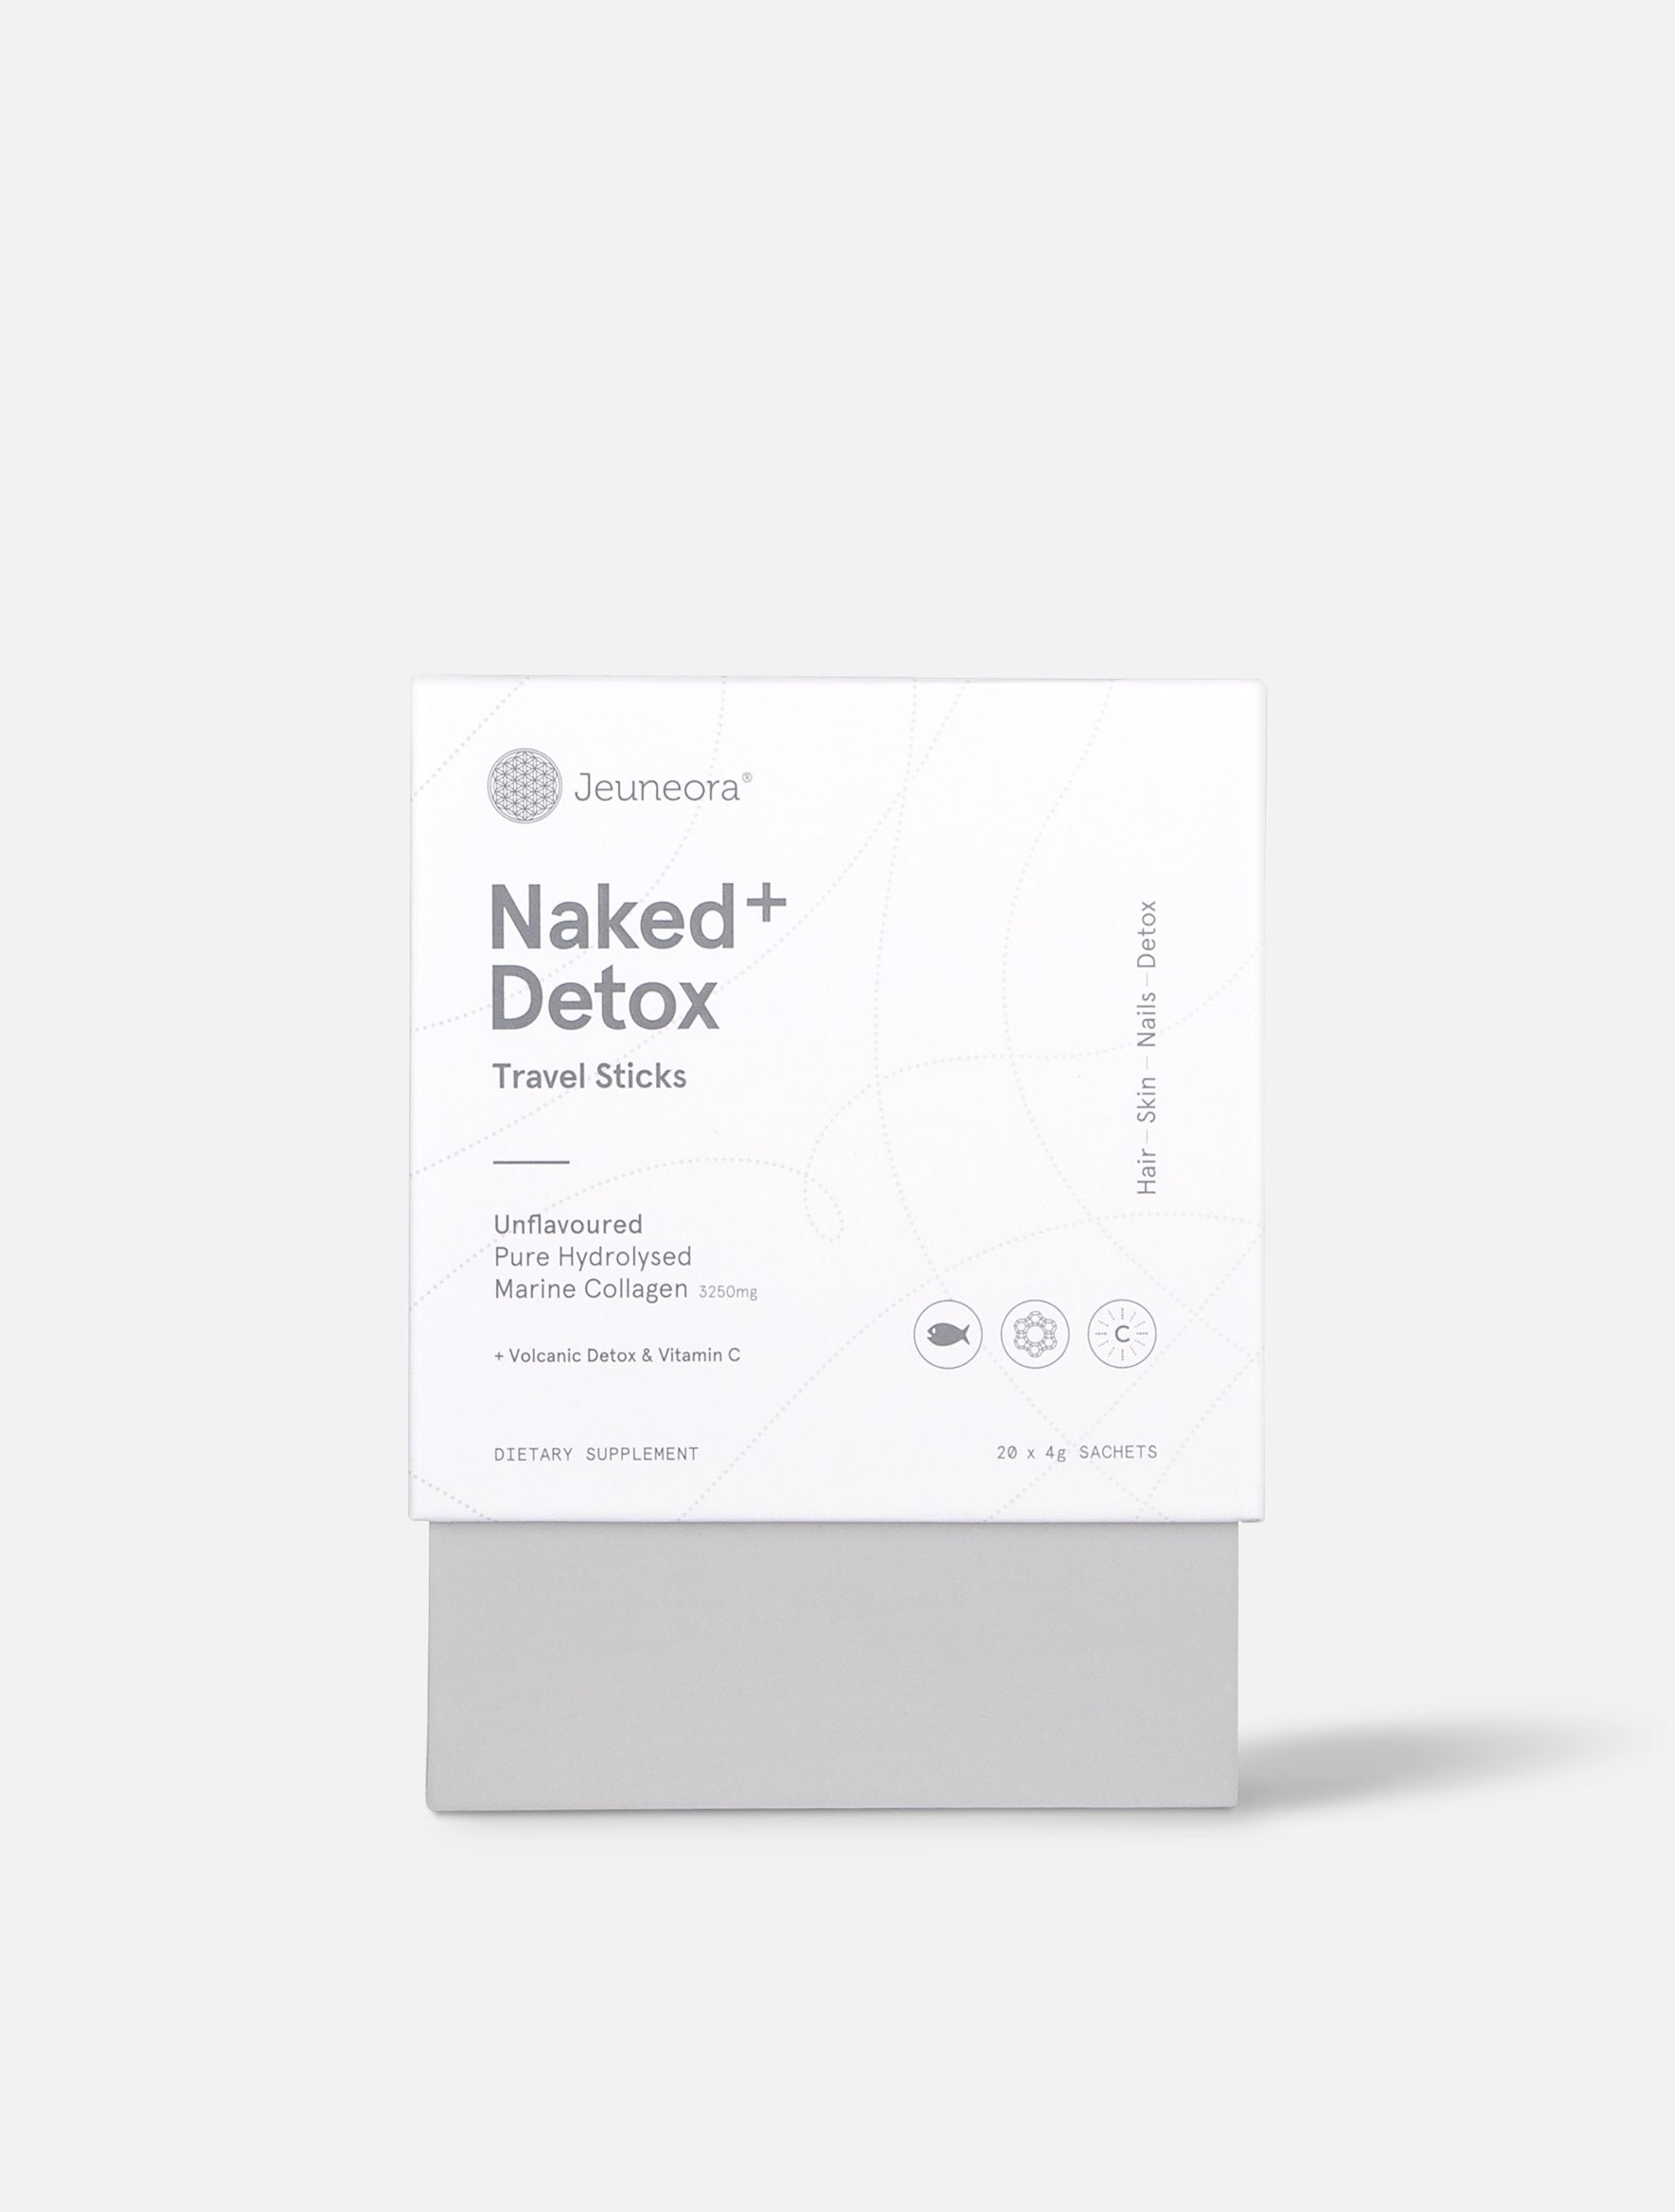 Jeuneora Naked+ Detox Marine Collagen Travel Sticks